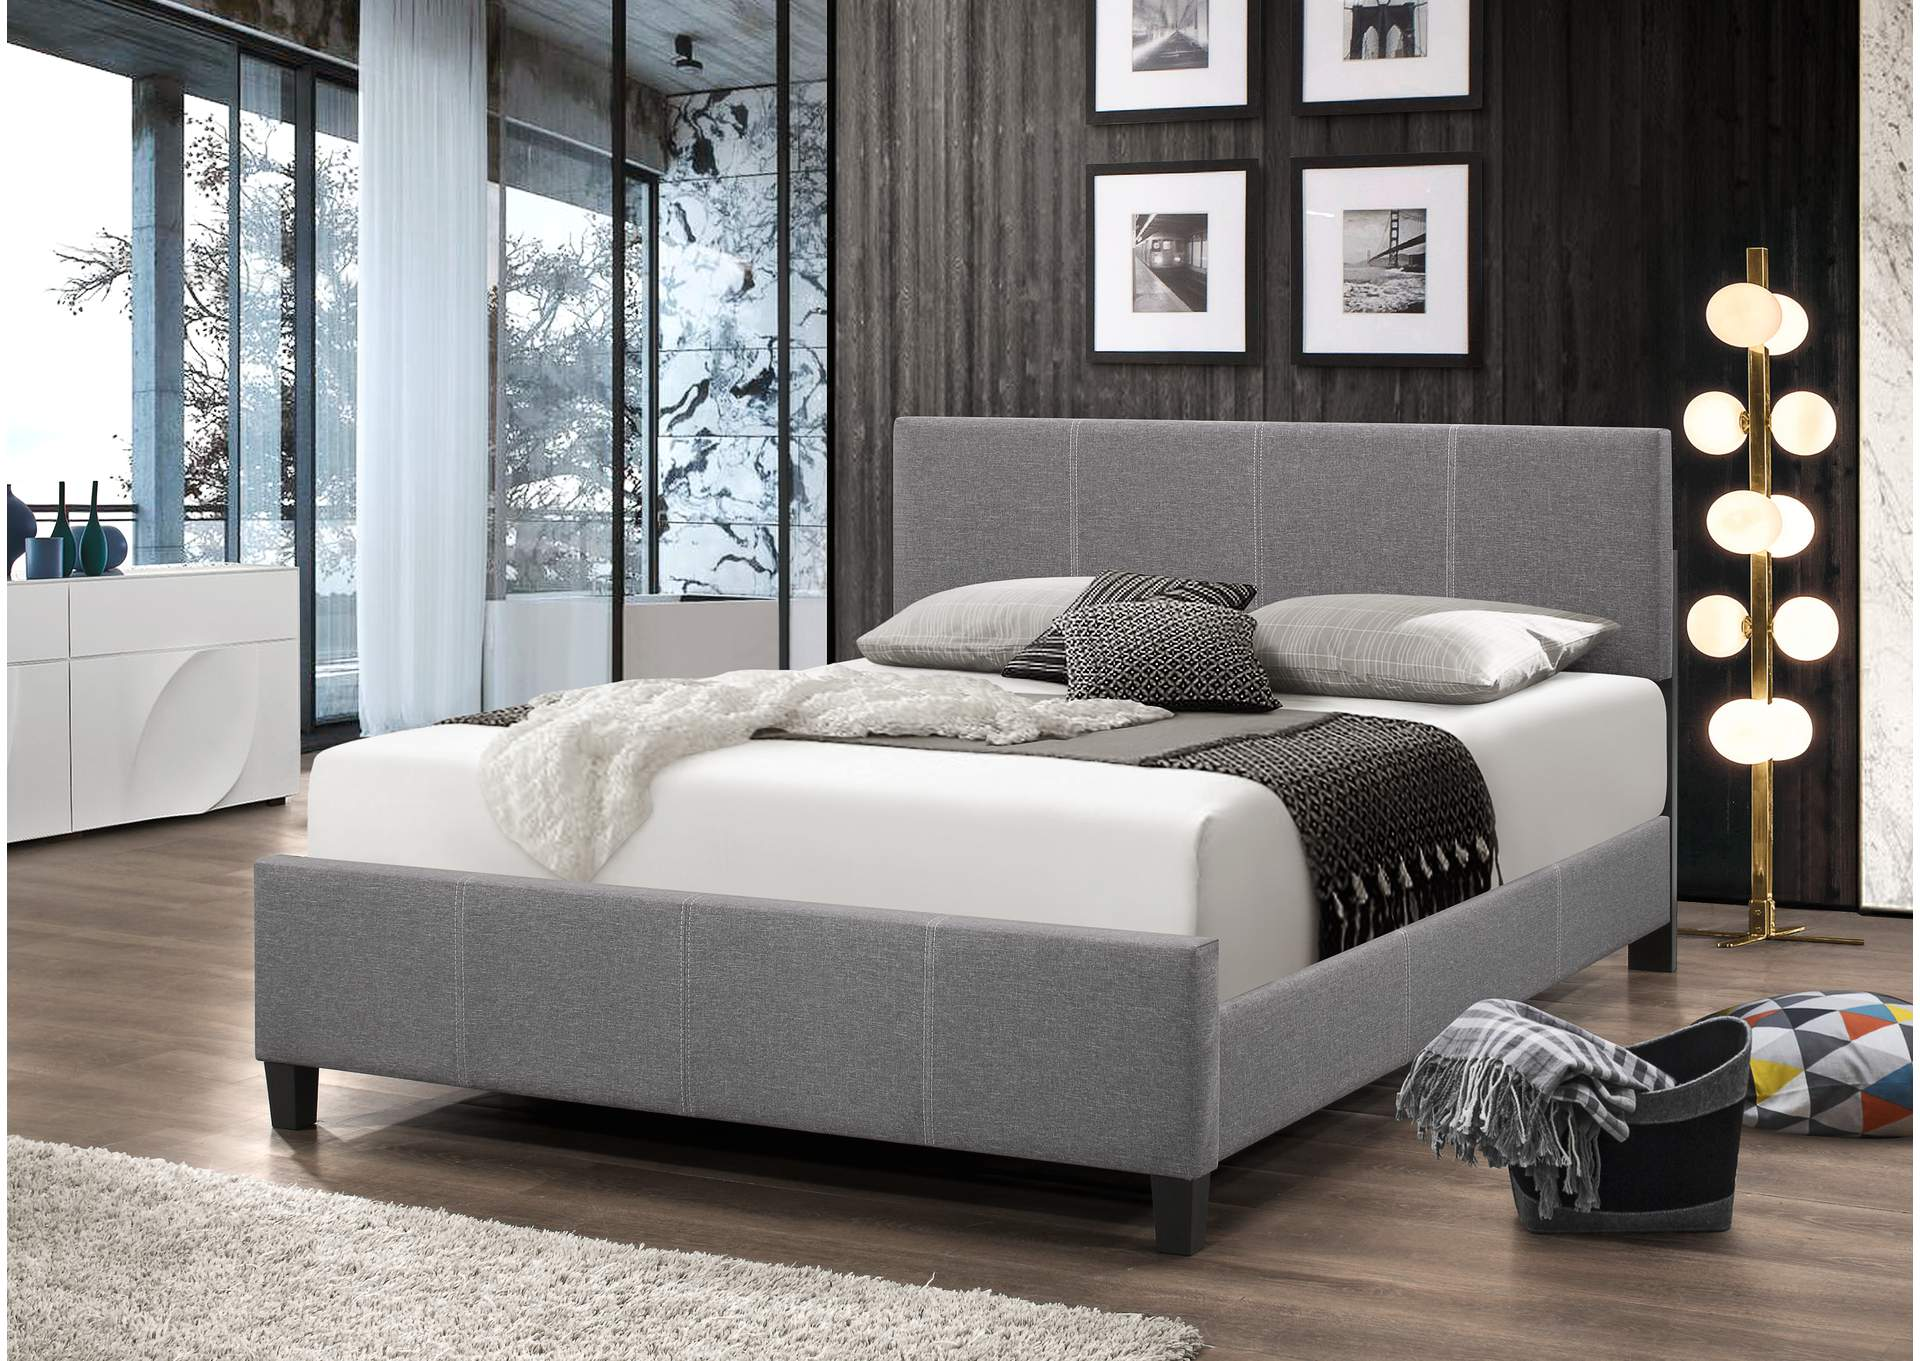 Larrenton Grey Panel Queen Bed,Global Trading